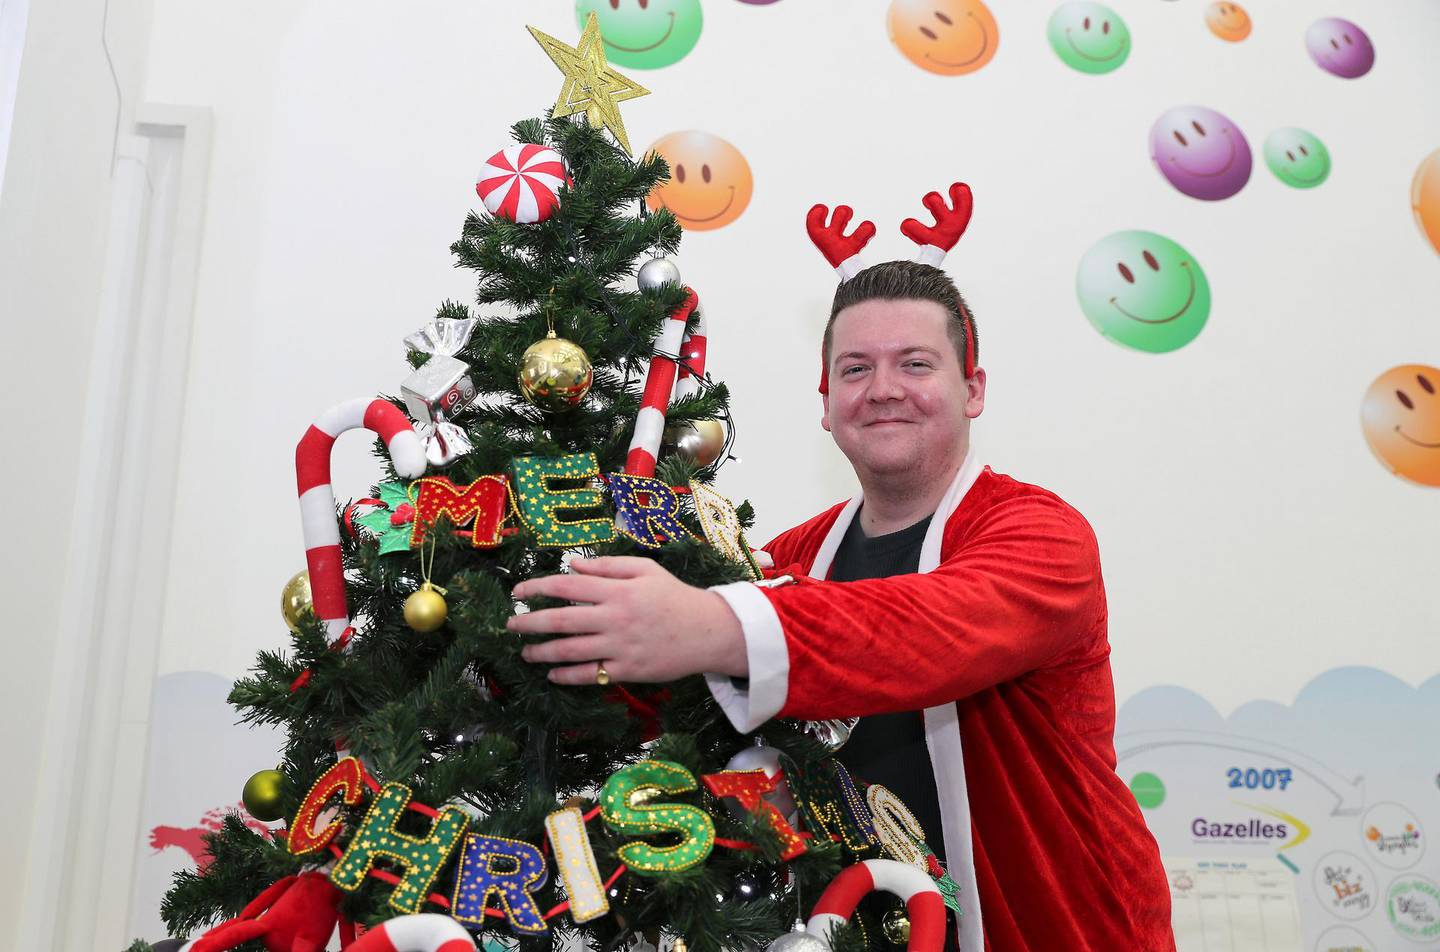 DUBAI, UNITED ARAB EMIRATES , December 16 – 2020 :- Thomas Smith, Marketing Executive with the Christmas tree at his office in the Biz group at Dubai Production City in Dubai. Thomas Smith is going to spend Christmas in Dubai and having a virtual Christmas drinks party with friends over Zoom due to pandemic and travel restrictions. ( Pawan Singh / The National ) For News/Online. Story by Gill